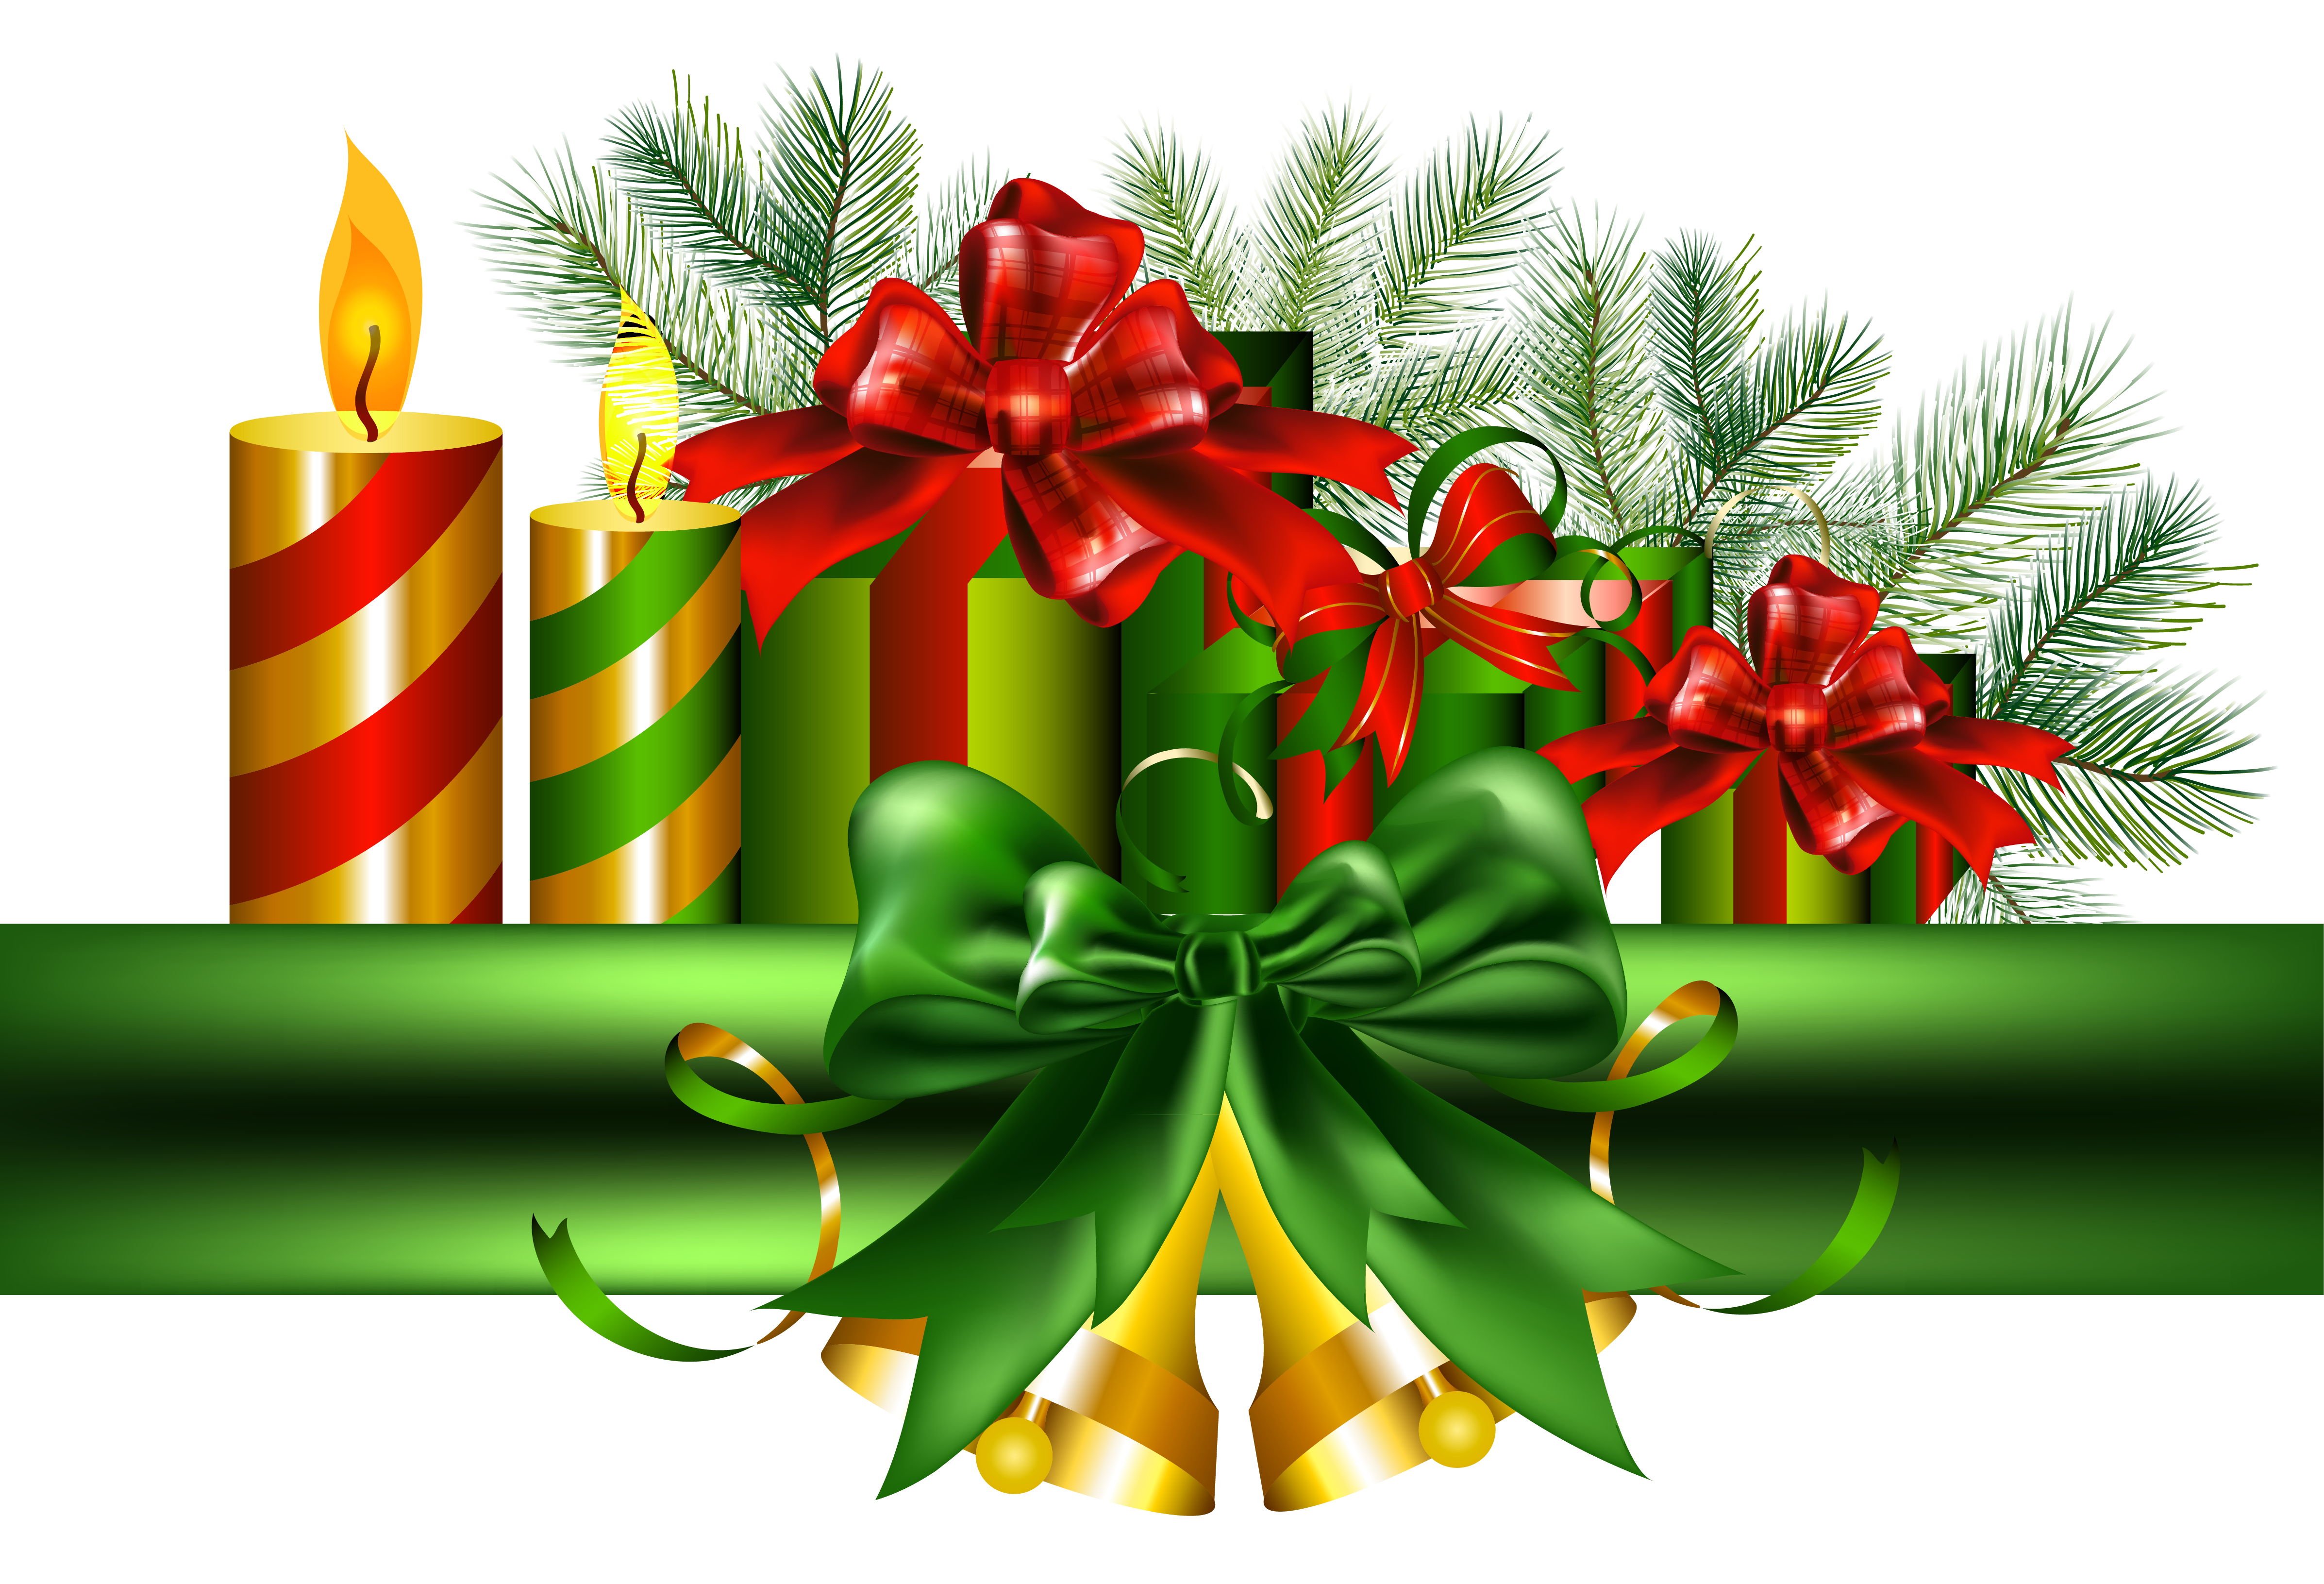 Christmas greens clipart graphic library stock Christmas Green Decoration with Golden Bells PNG Clipart | Gallery ... graphic library stock